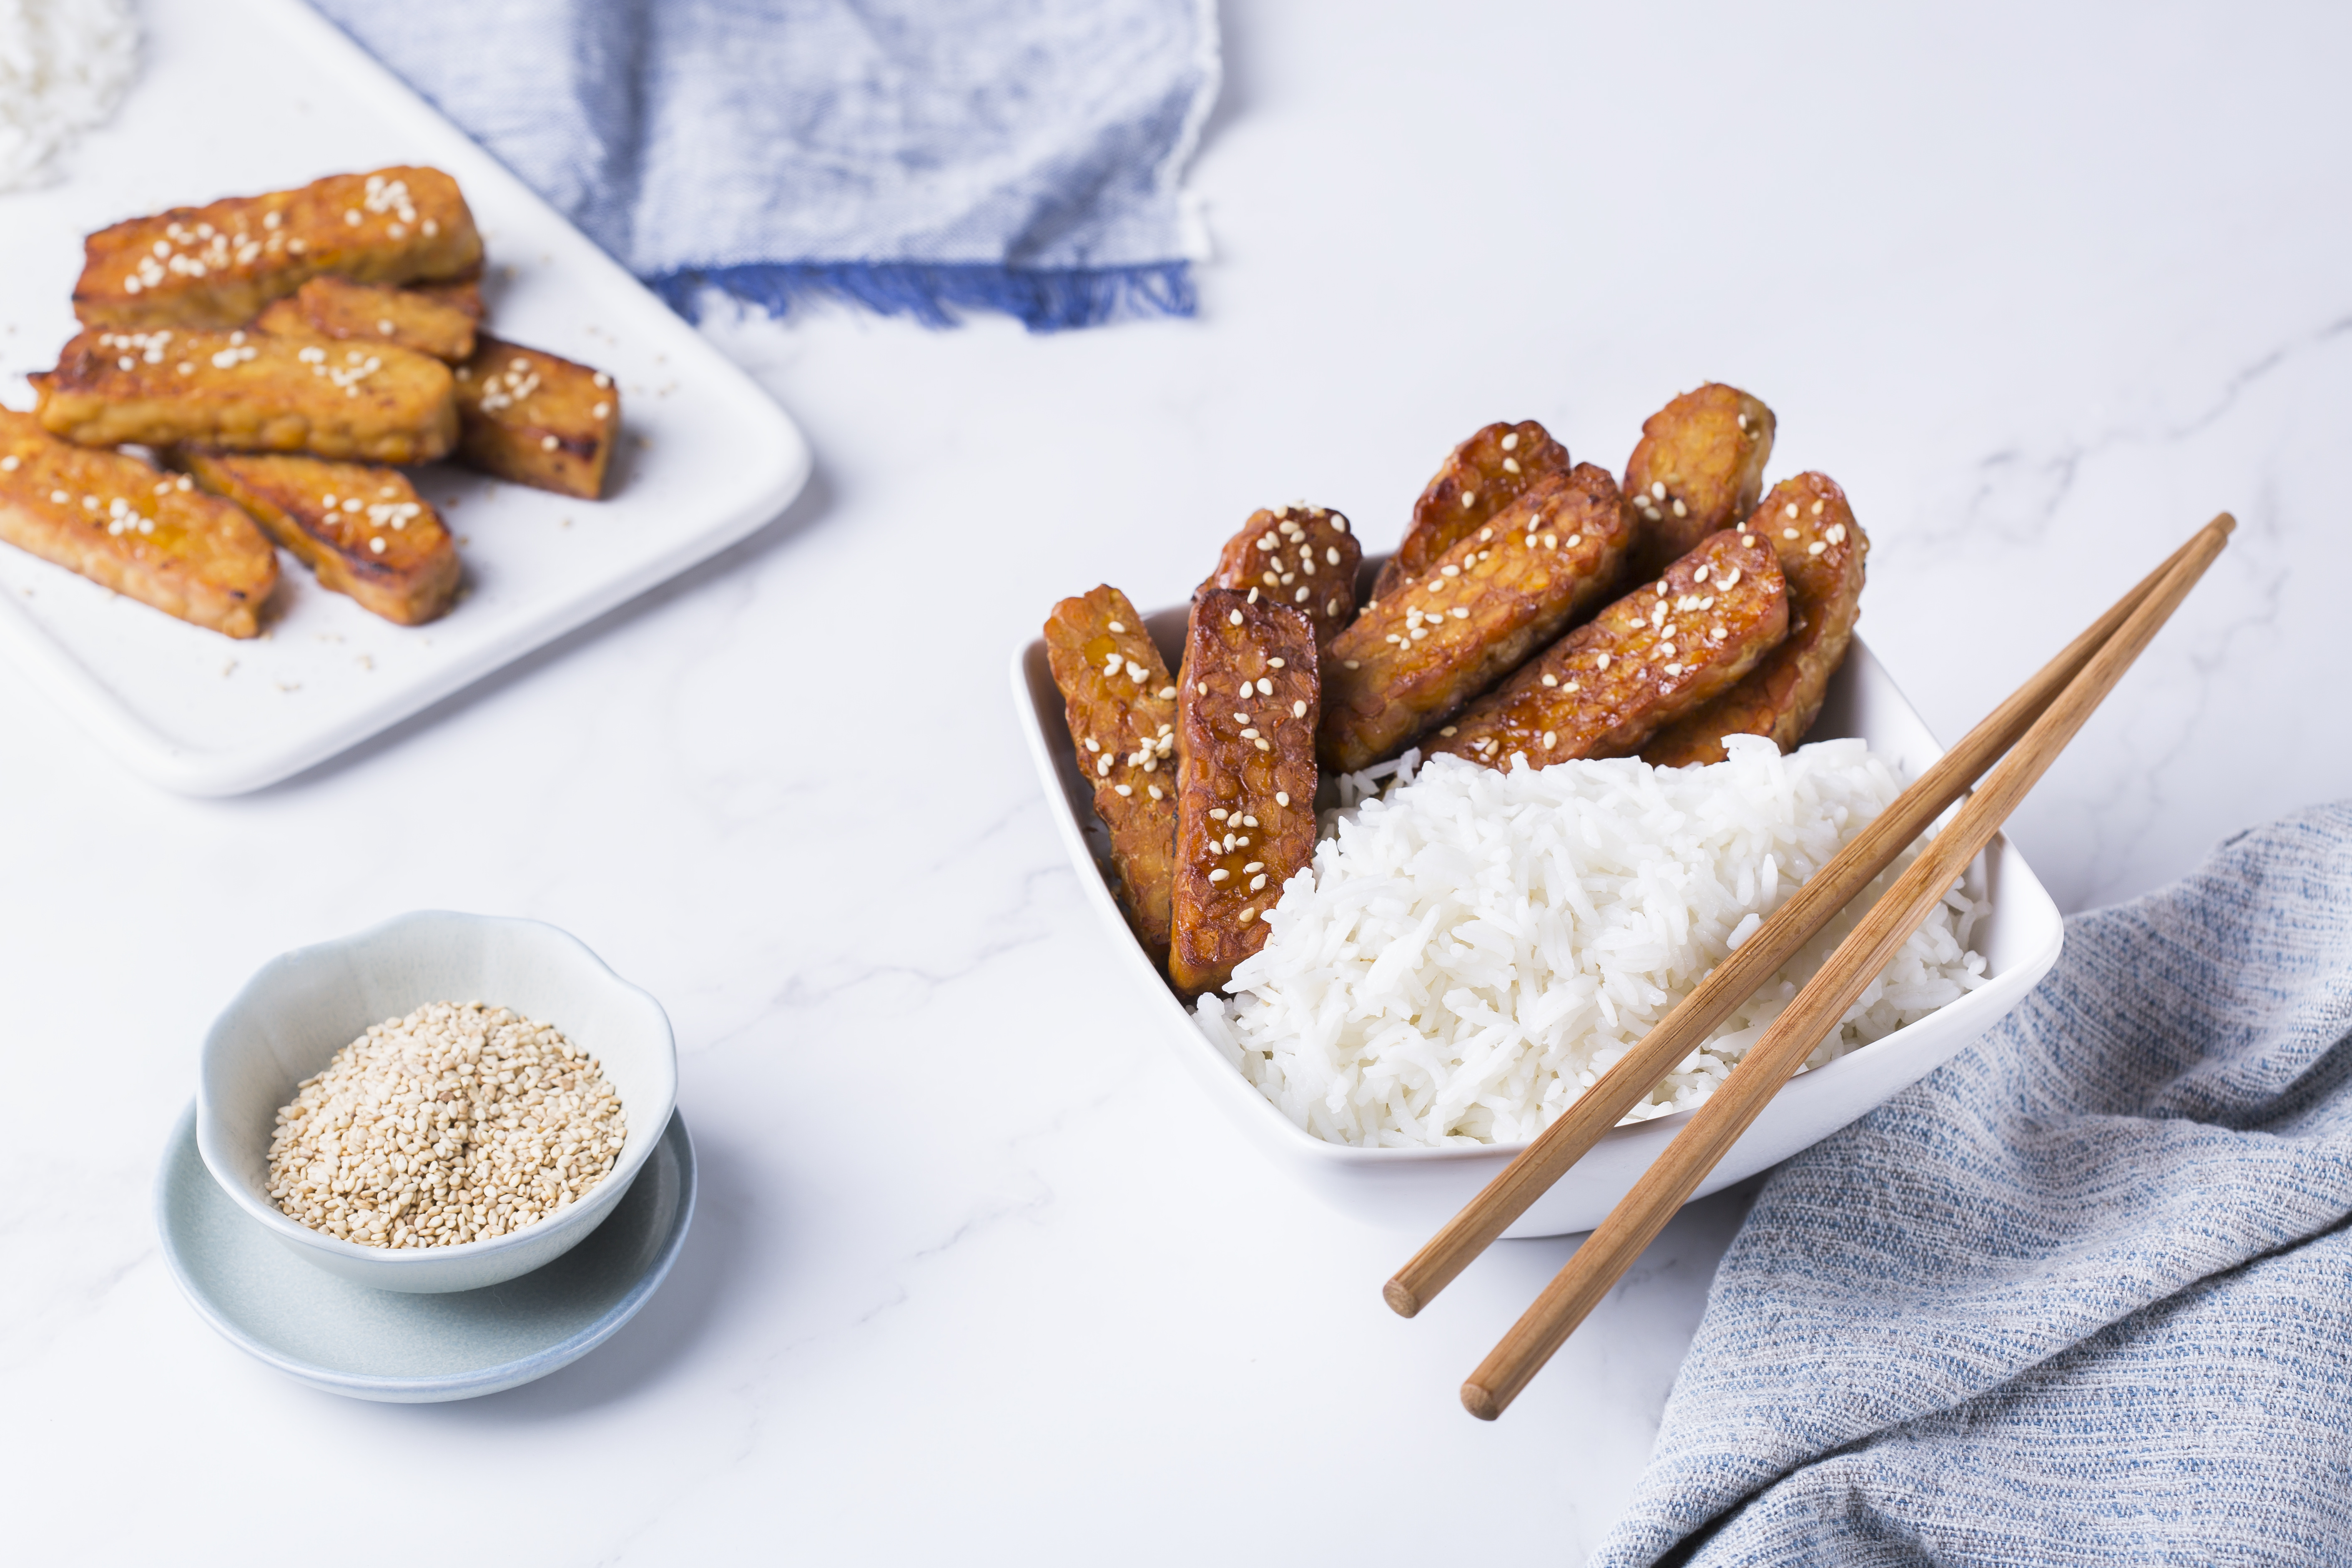 The word probiotics refers to the beneficial microbes found in certain fermented foods such as this fried tempeh, which is derived from soybeans, and beverages, as well in specially formulated nutritional supplements.